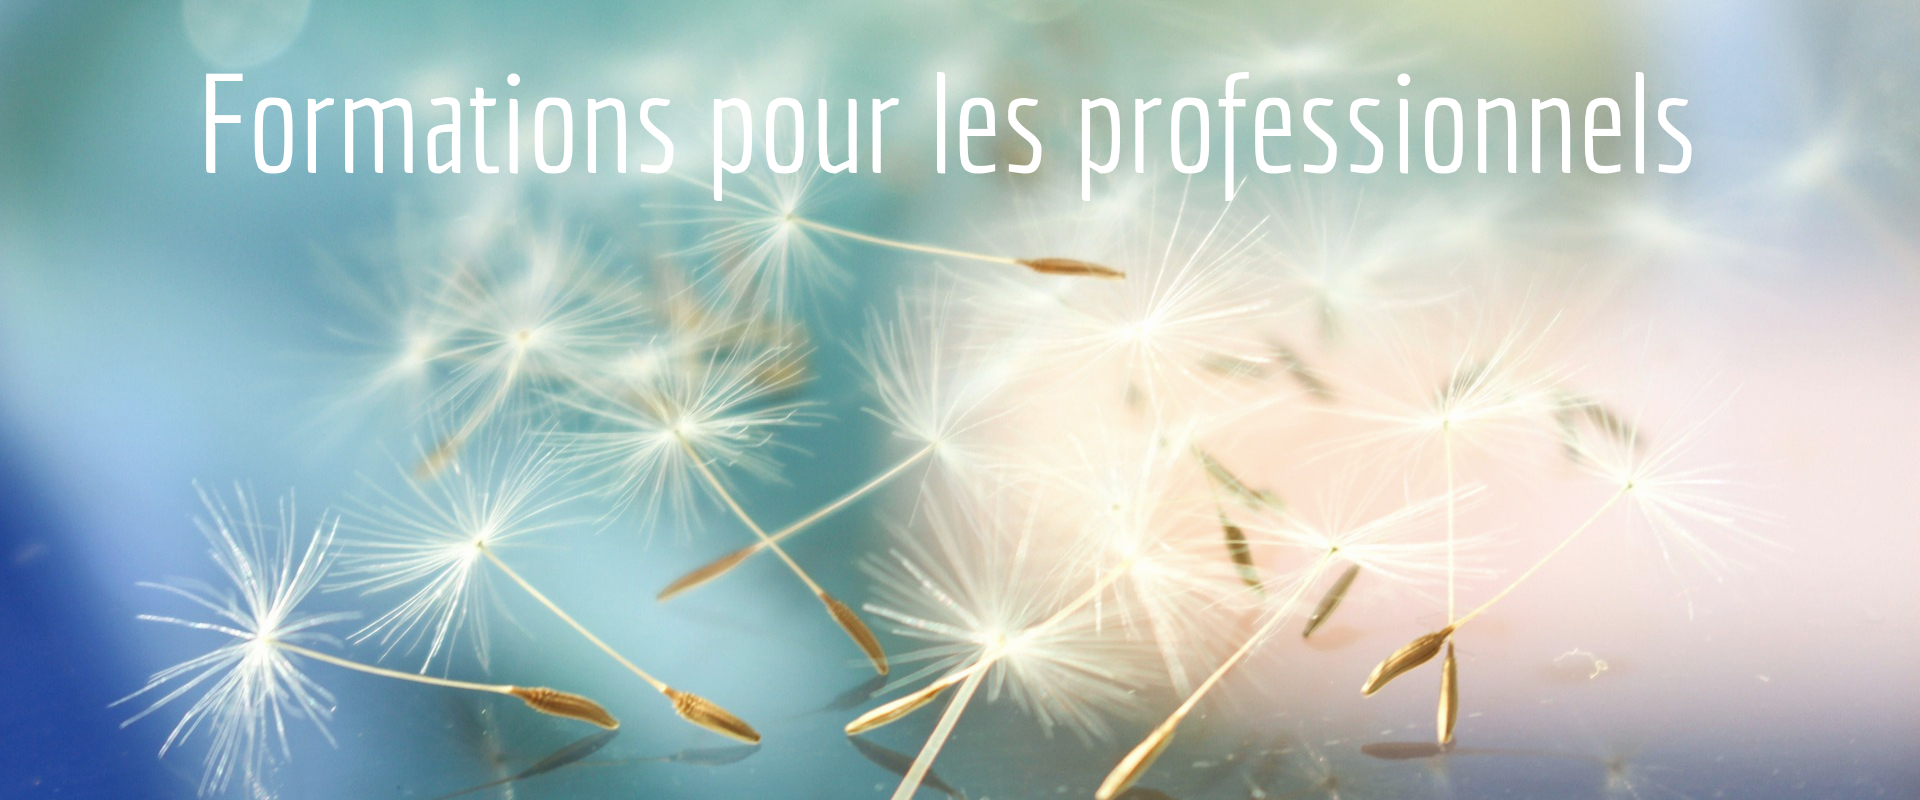 https://www.alimentation-integrative.fr/wp-content/uploads/2019/07/Formation-slider.png